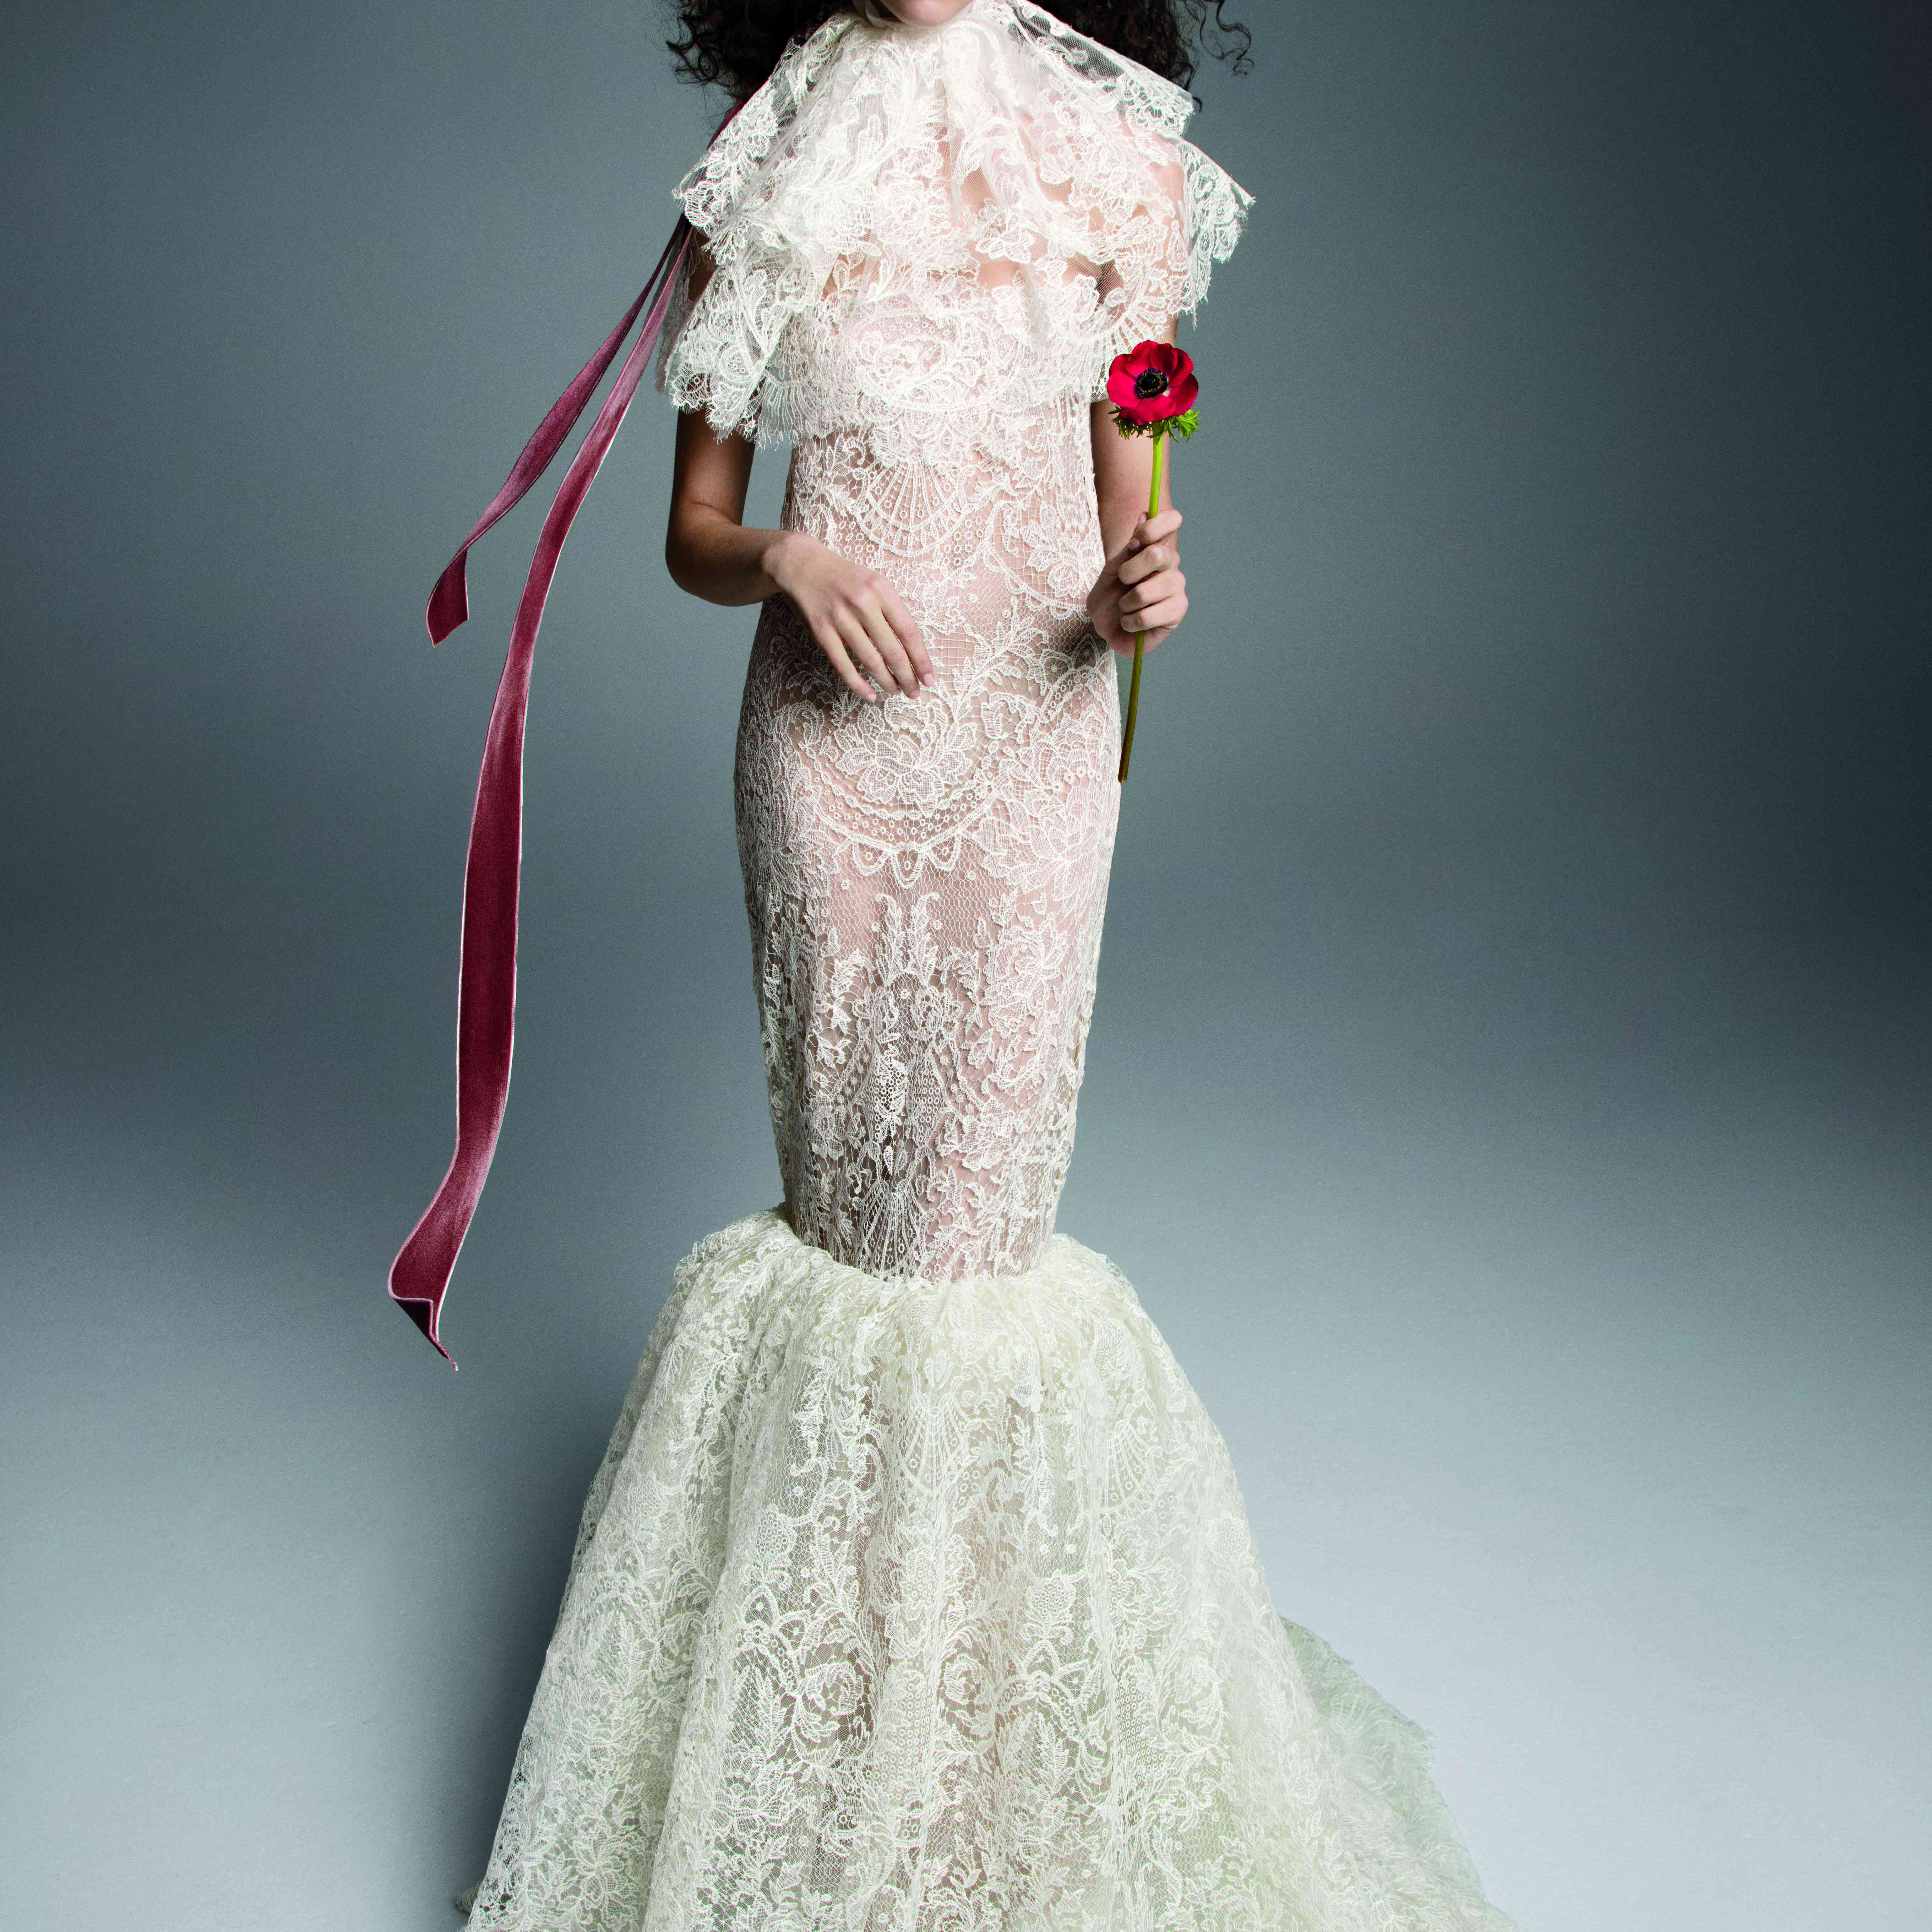 Model in allover lace mermaid gown with a red ribbon detail at the back neckline